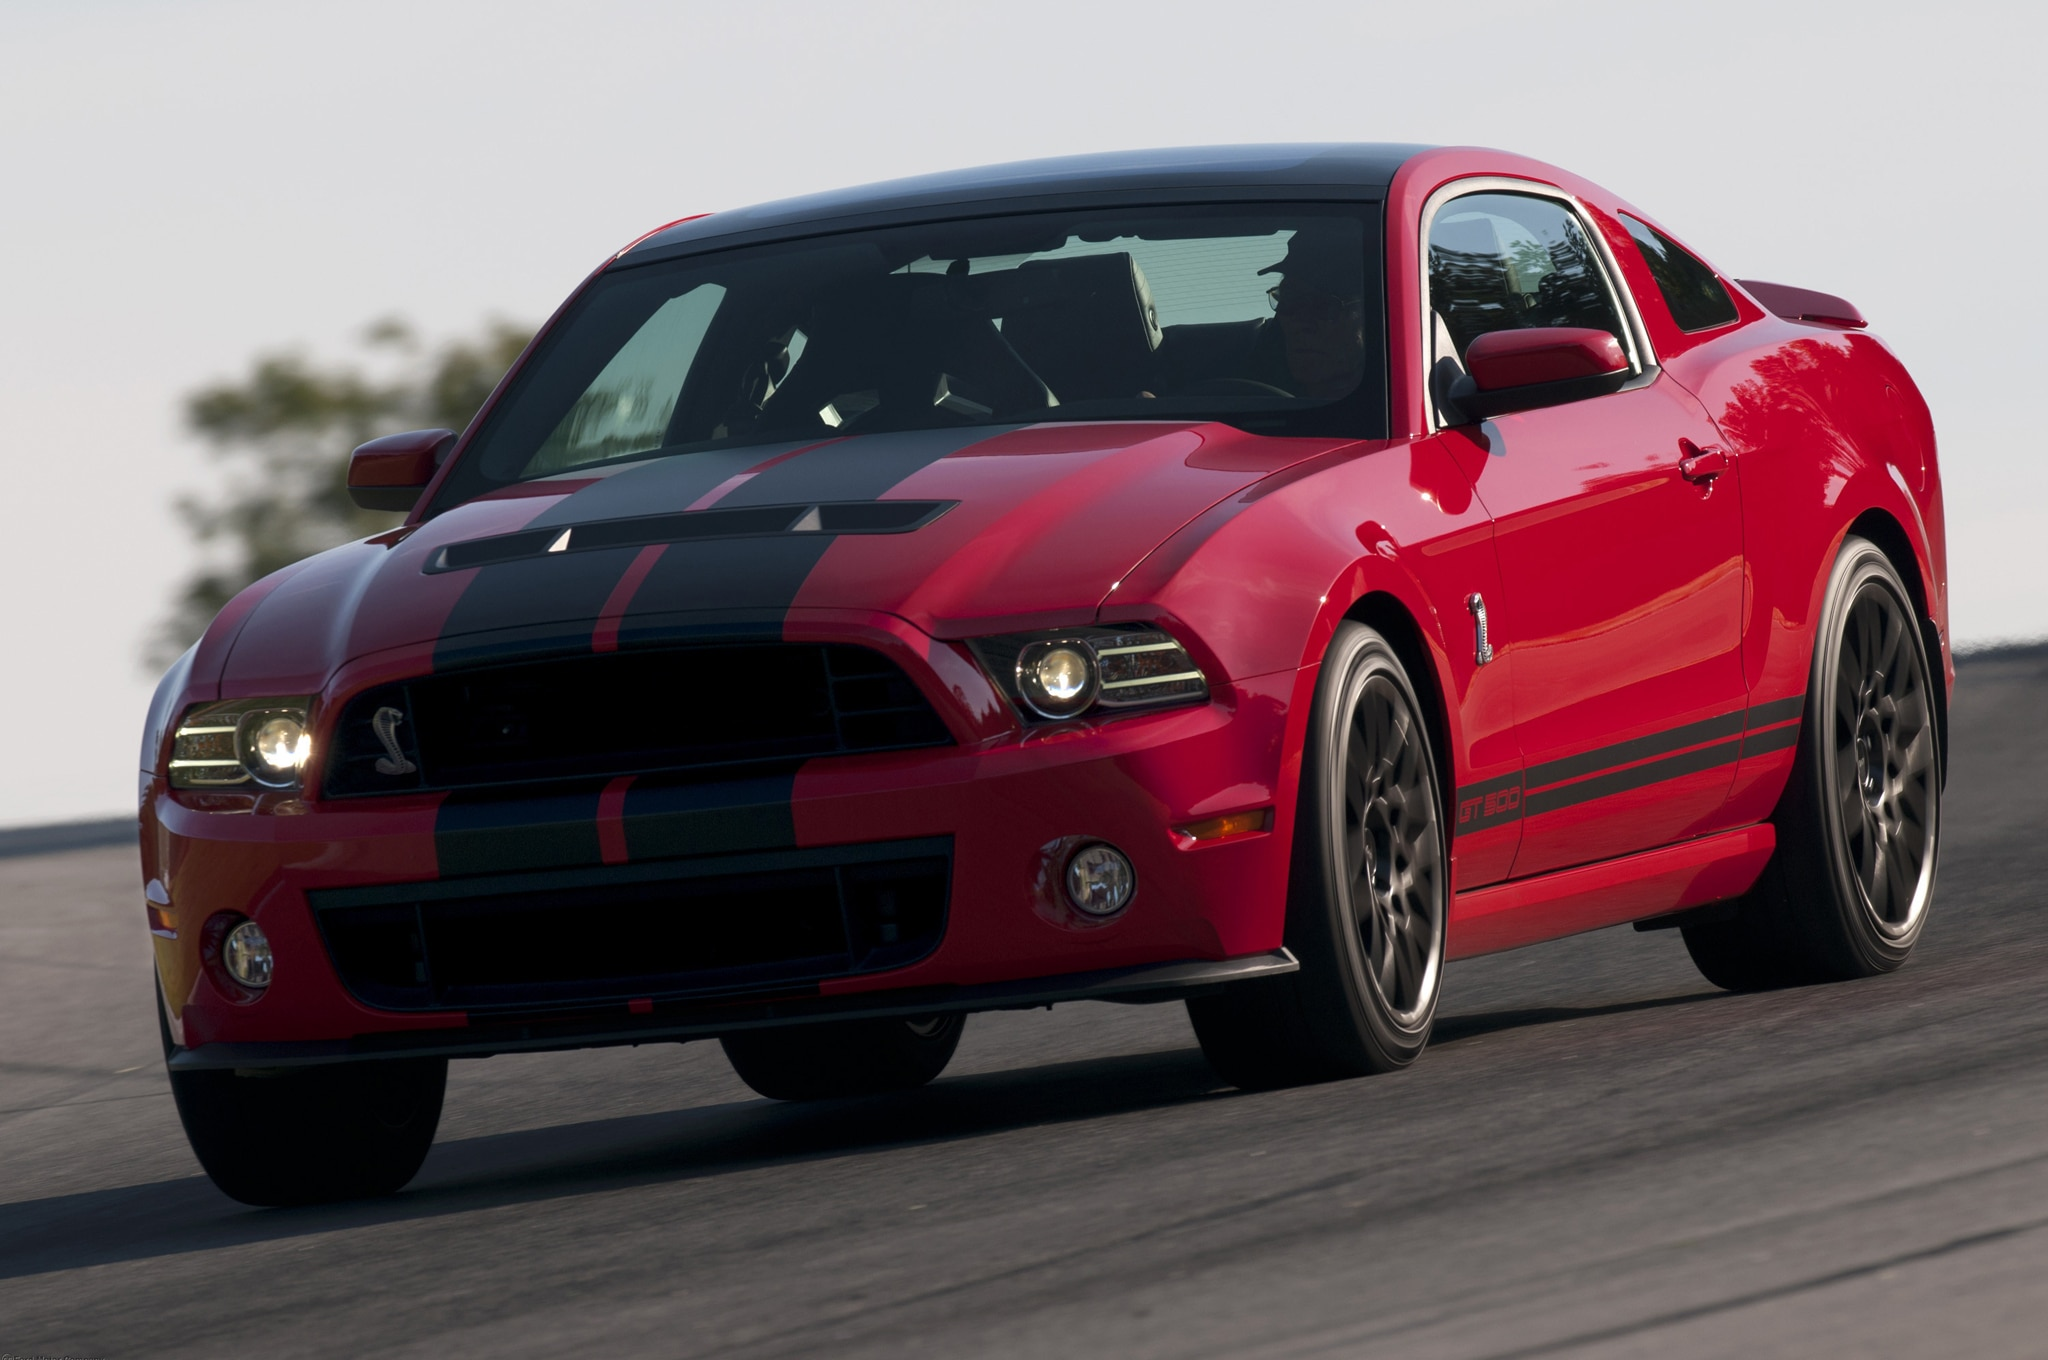 2019 Gt 500 >> 2013 Shelby GT500 Super Snake First Drive - Automobile Magazine